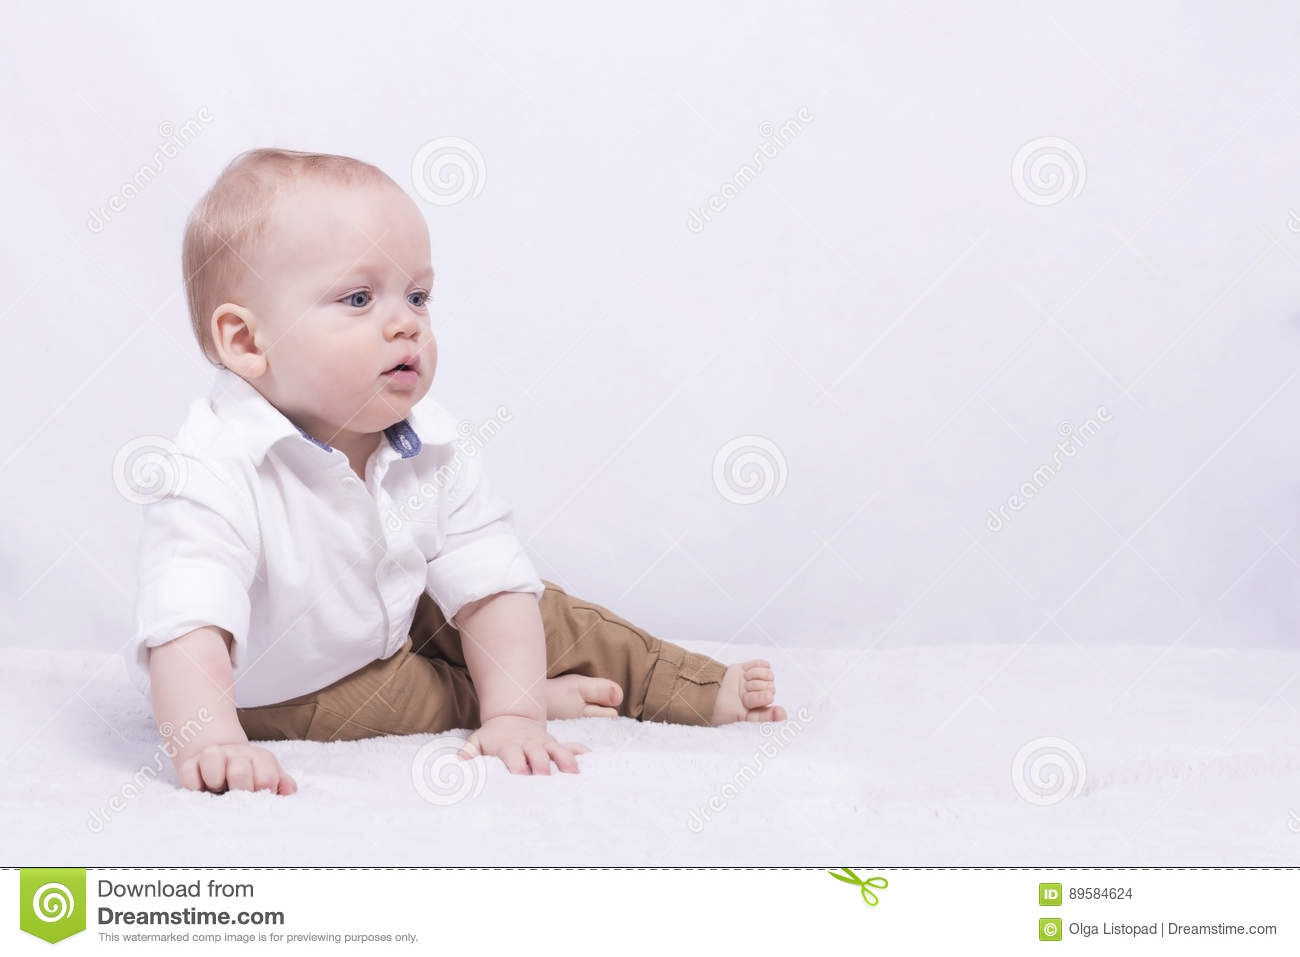 1d2d5478f Thoughful Big-eyed Toddler Looking Away And Sitting On The White ...